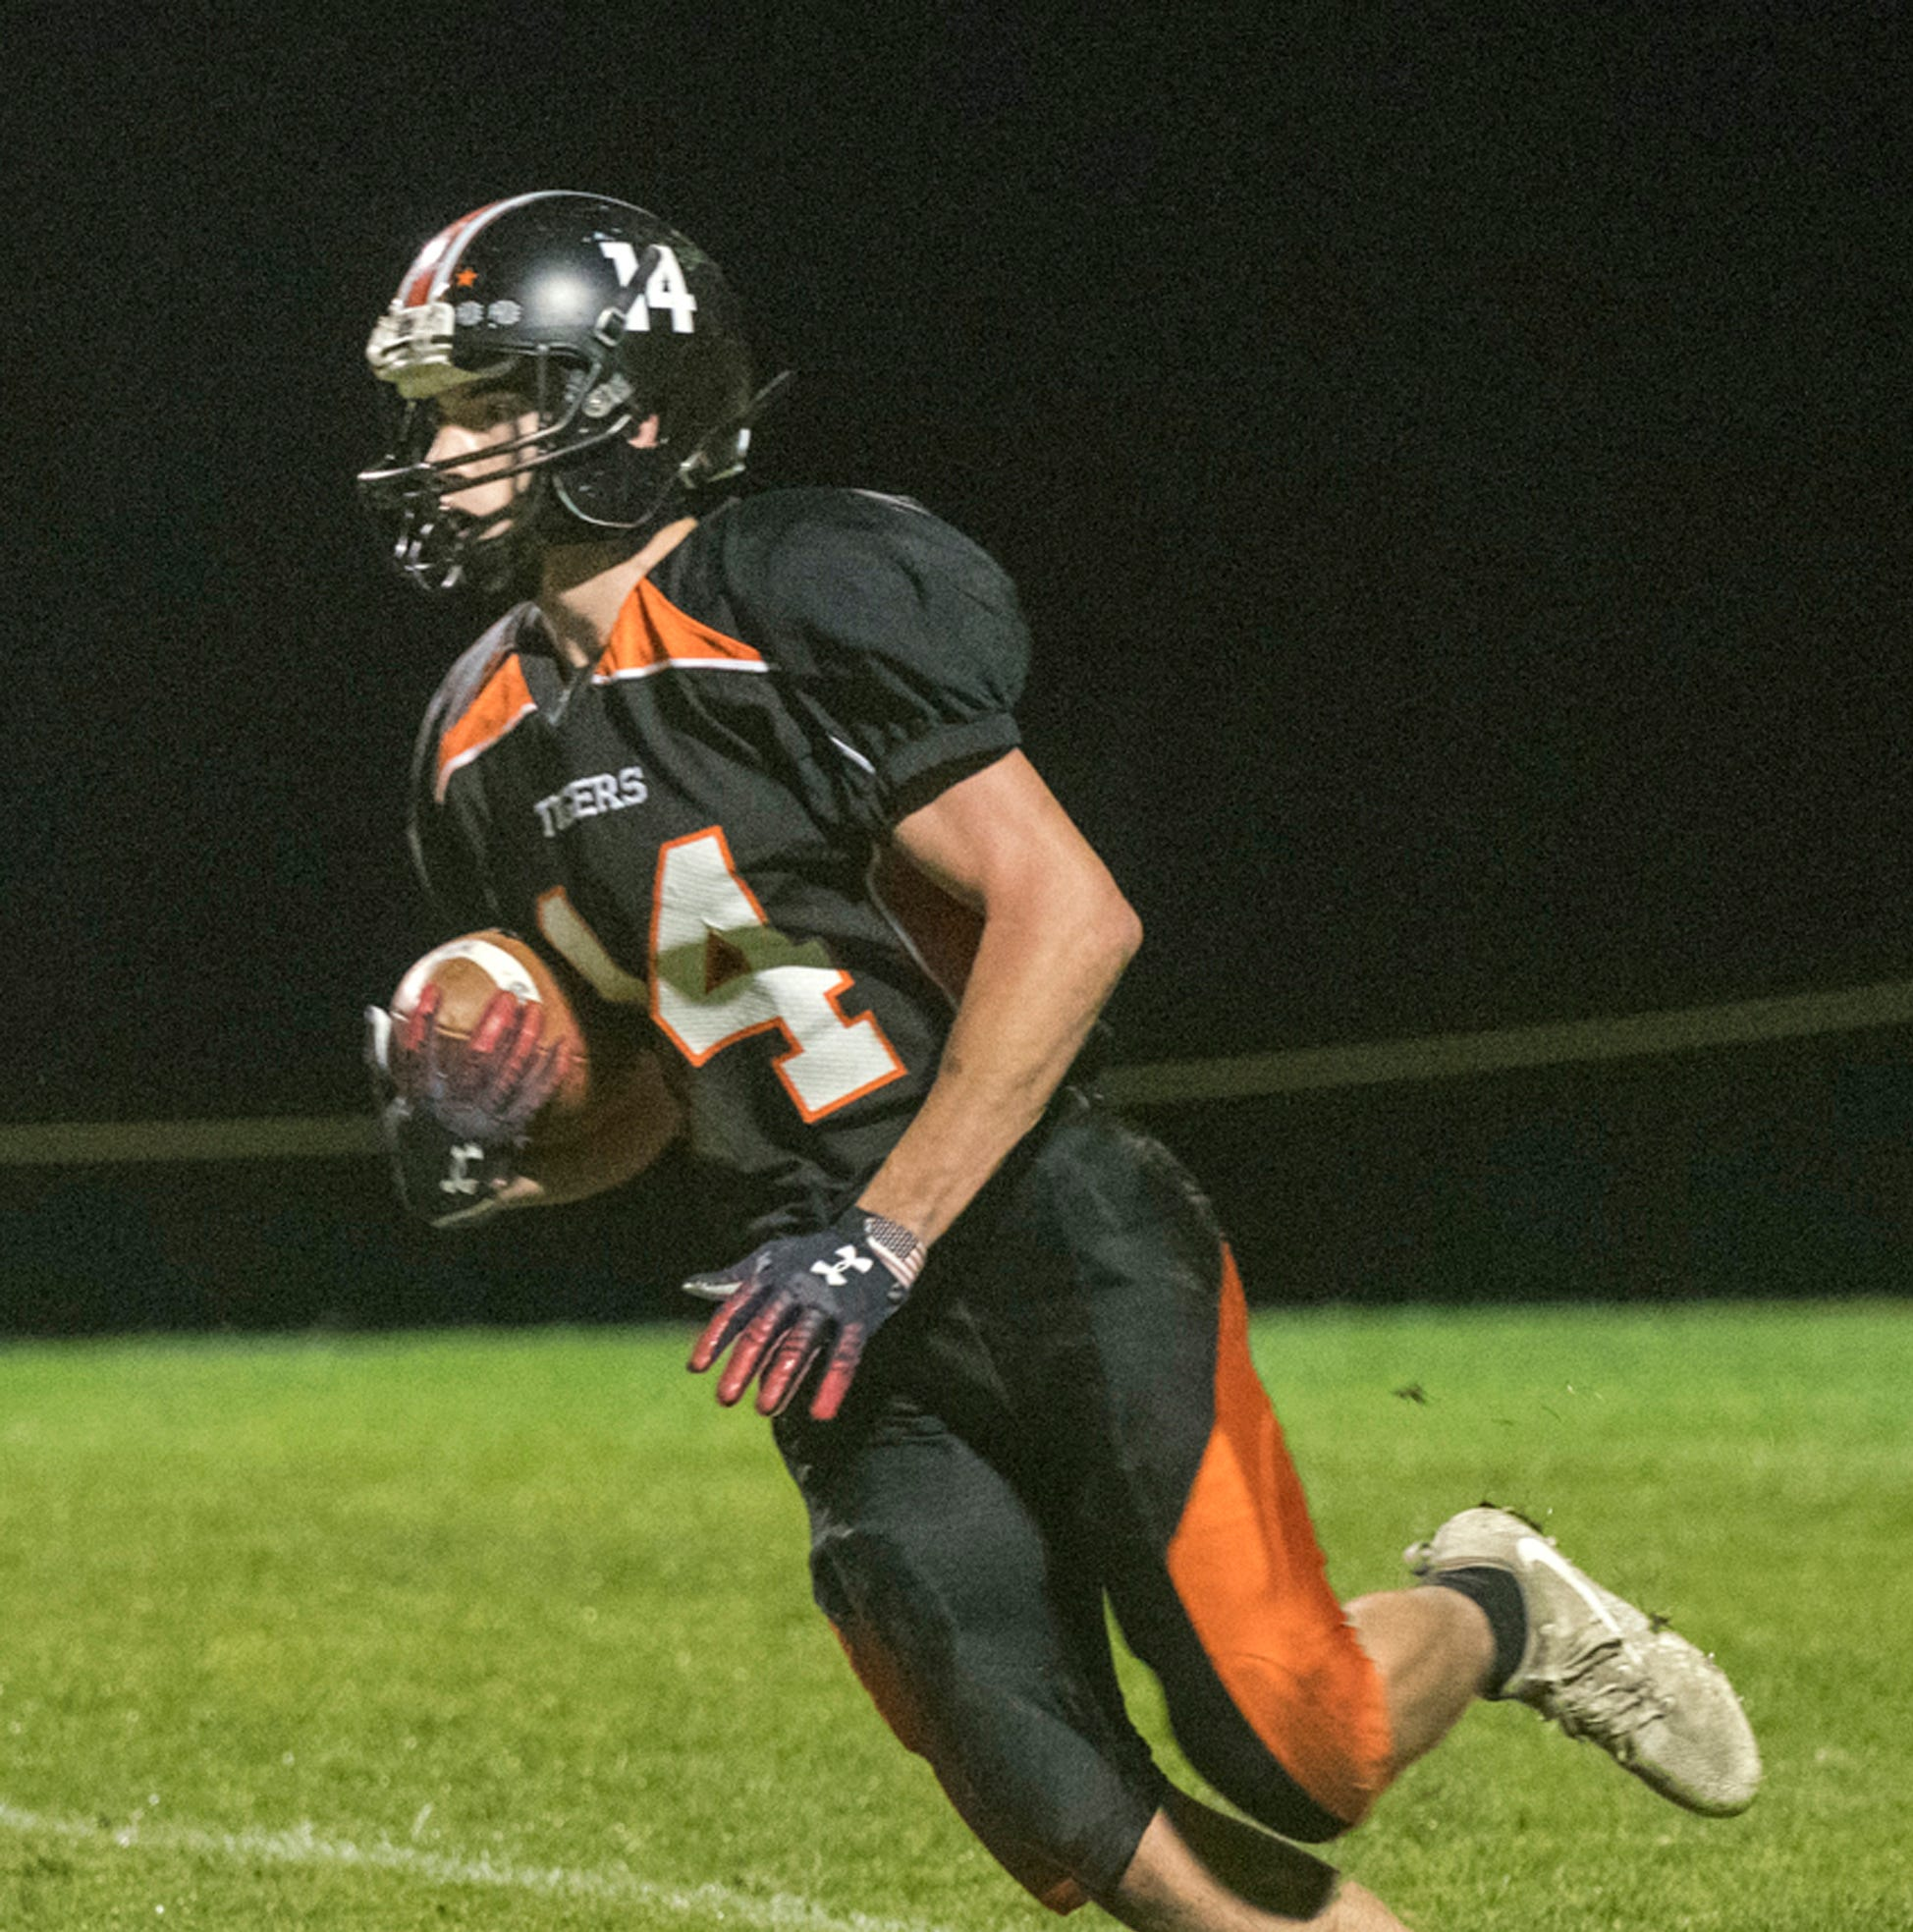 Vermont high school highlights: Middlebury football outlasts SeaWolves